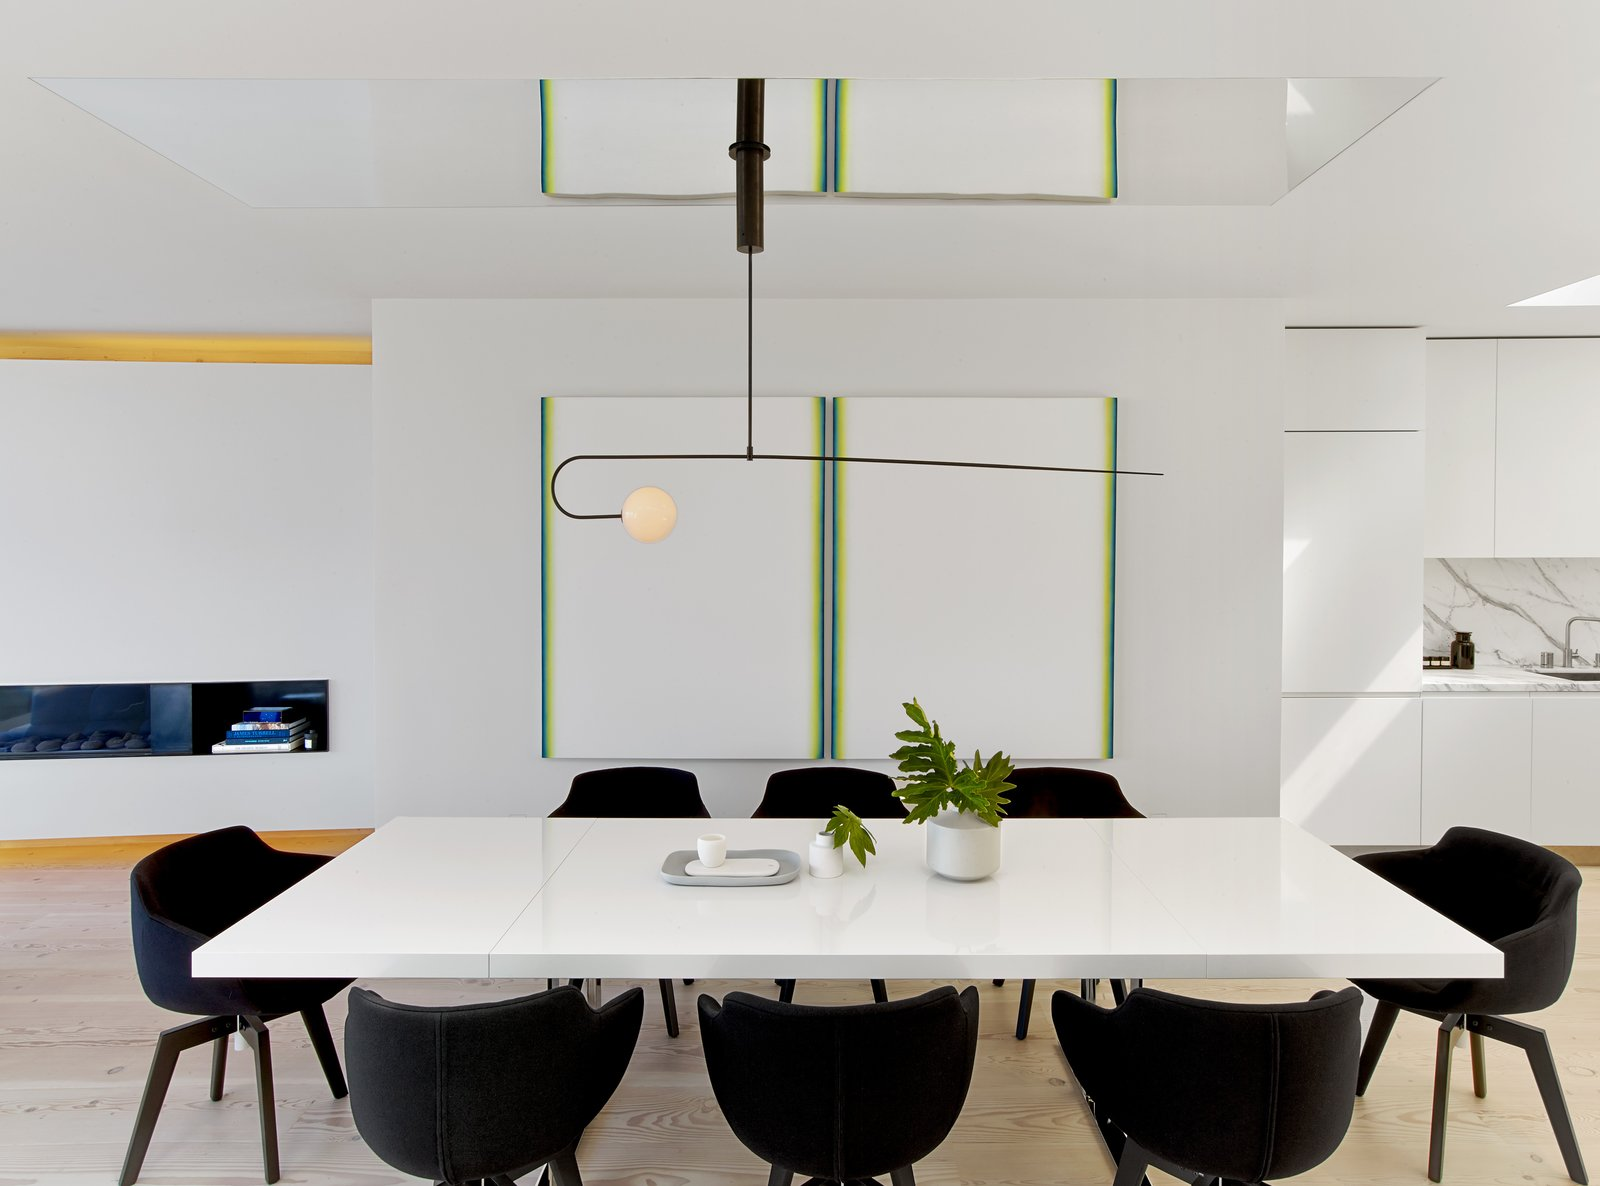 Tagged: Dining Room, Chair, Table, Pendant Lighting, and Light Hardwood Floor.  Glen Park Residence by CCS Architecture